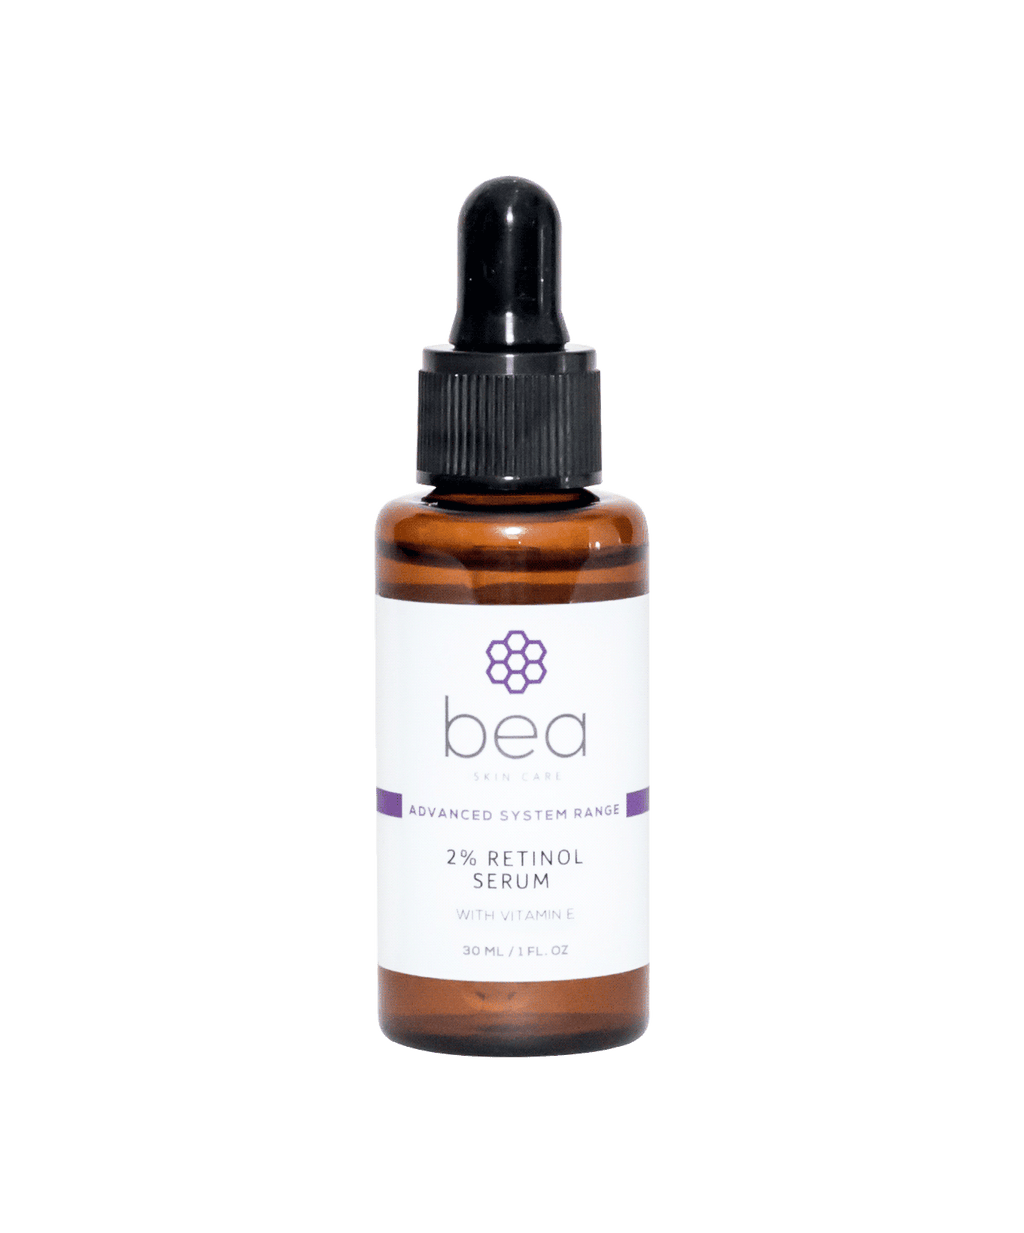 2% Retinol Serum with Vitamin E - 30 ml Face Serum bea Skin Care